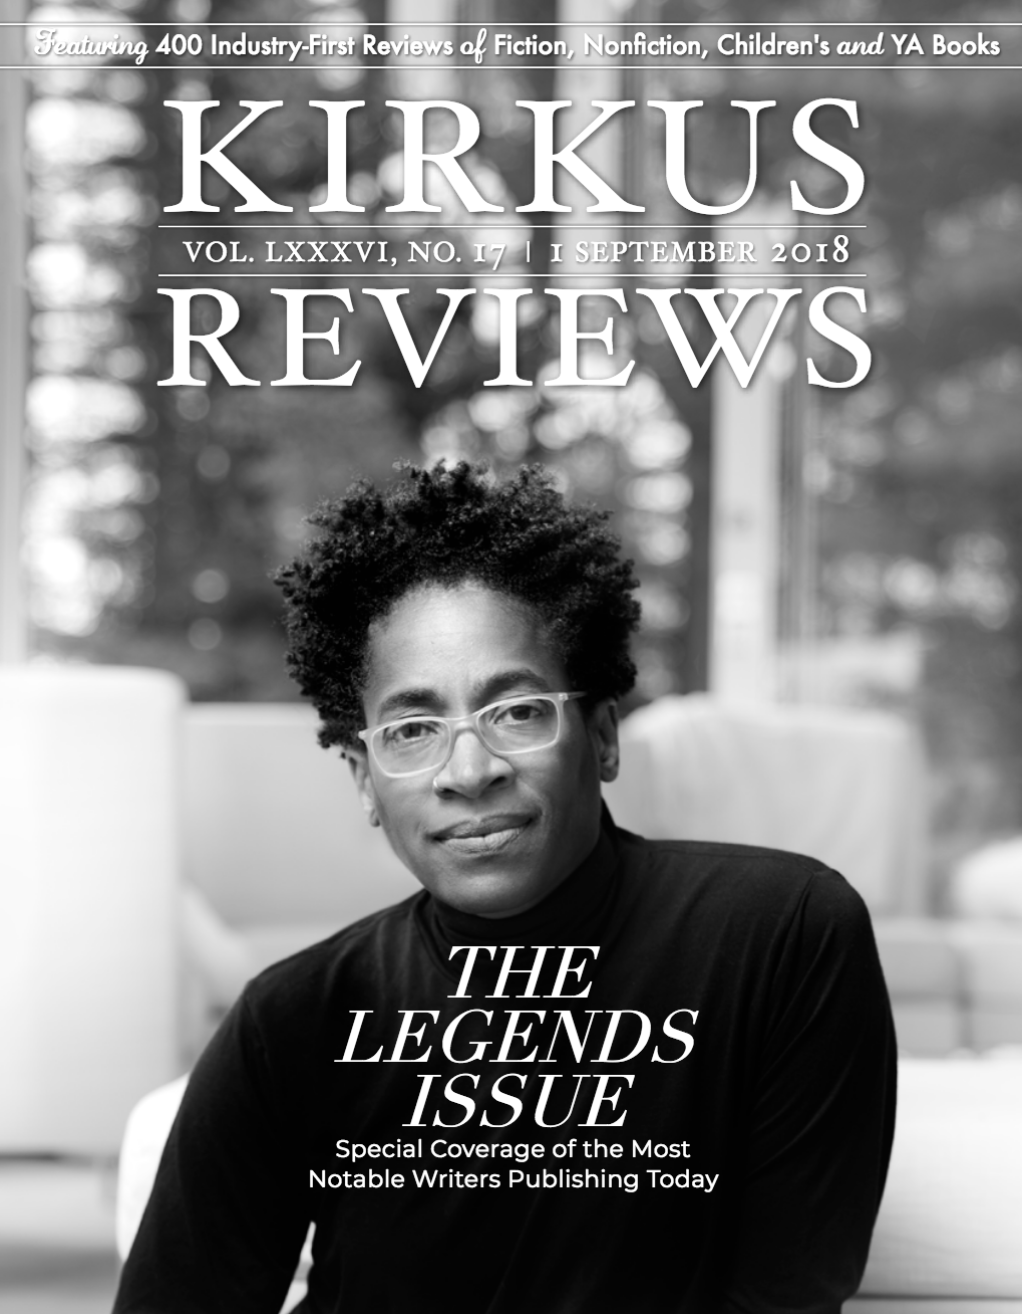 The Legends Issue